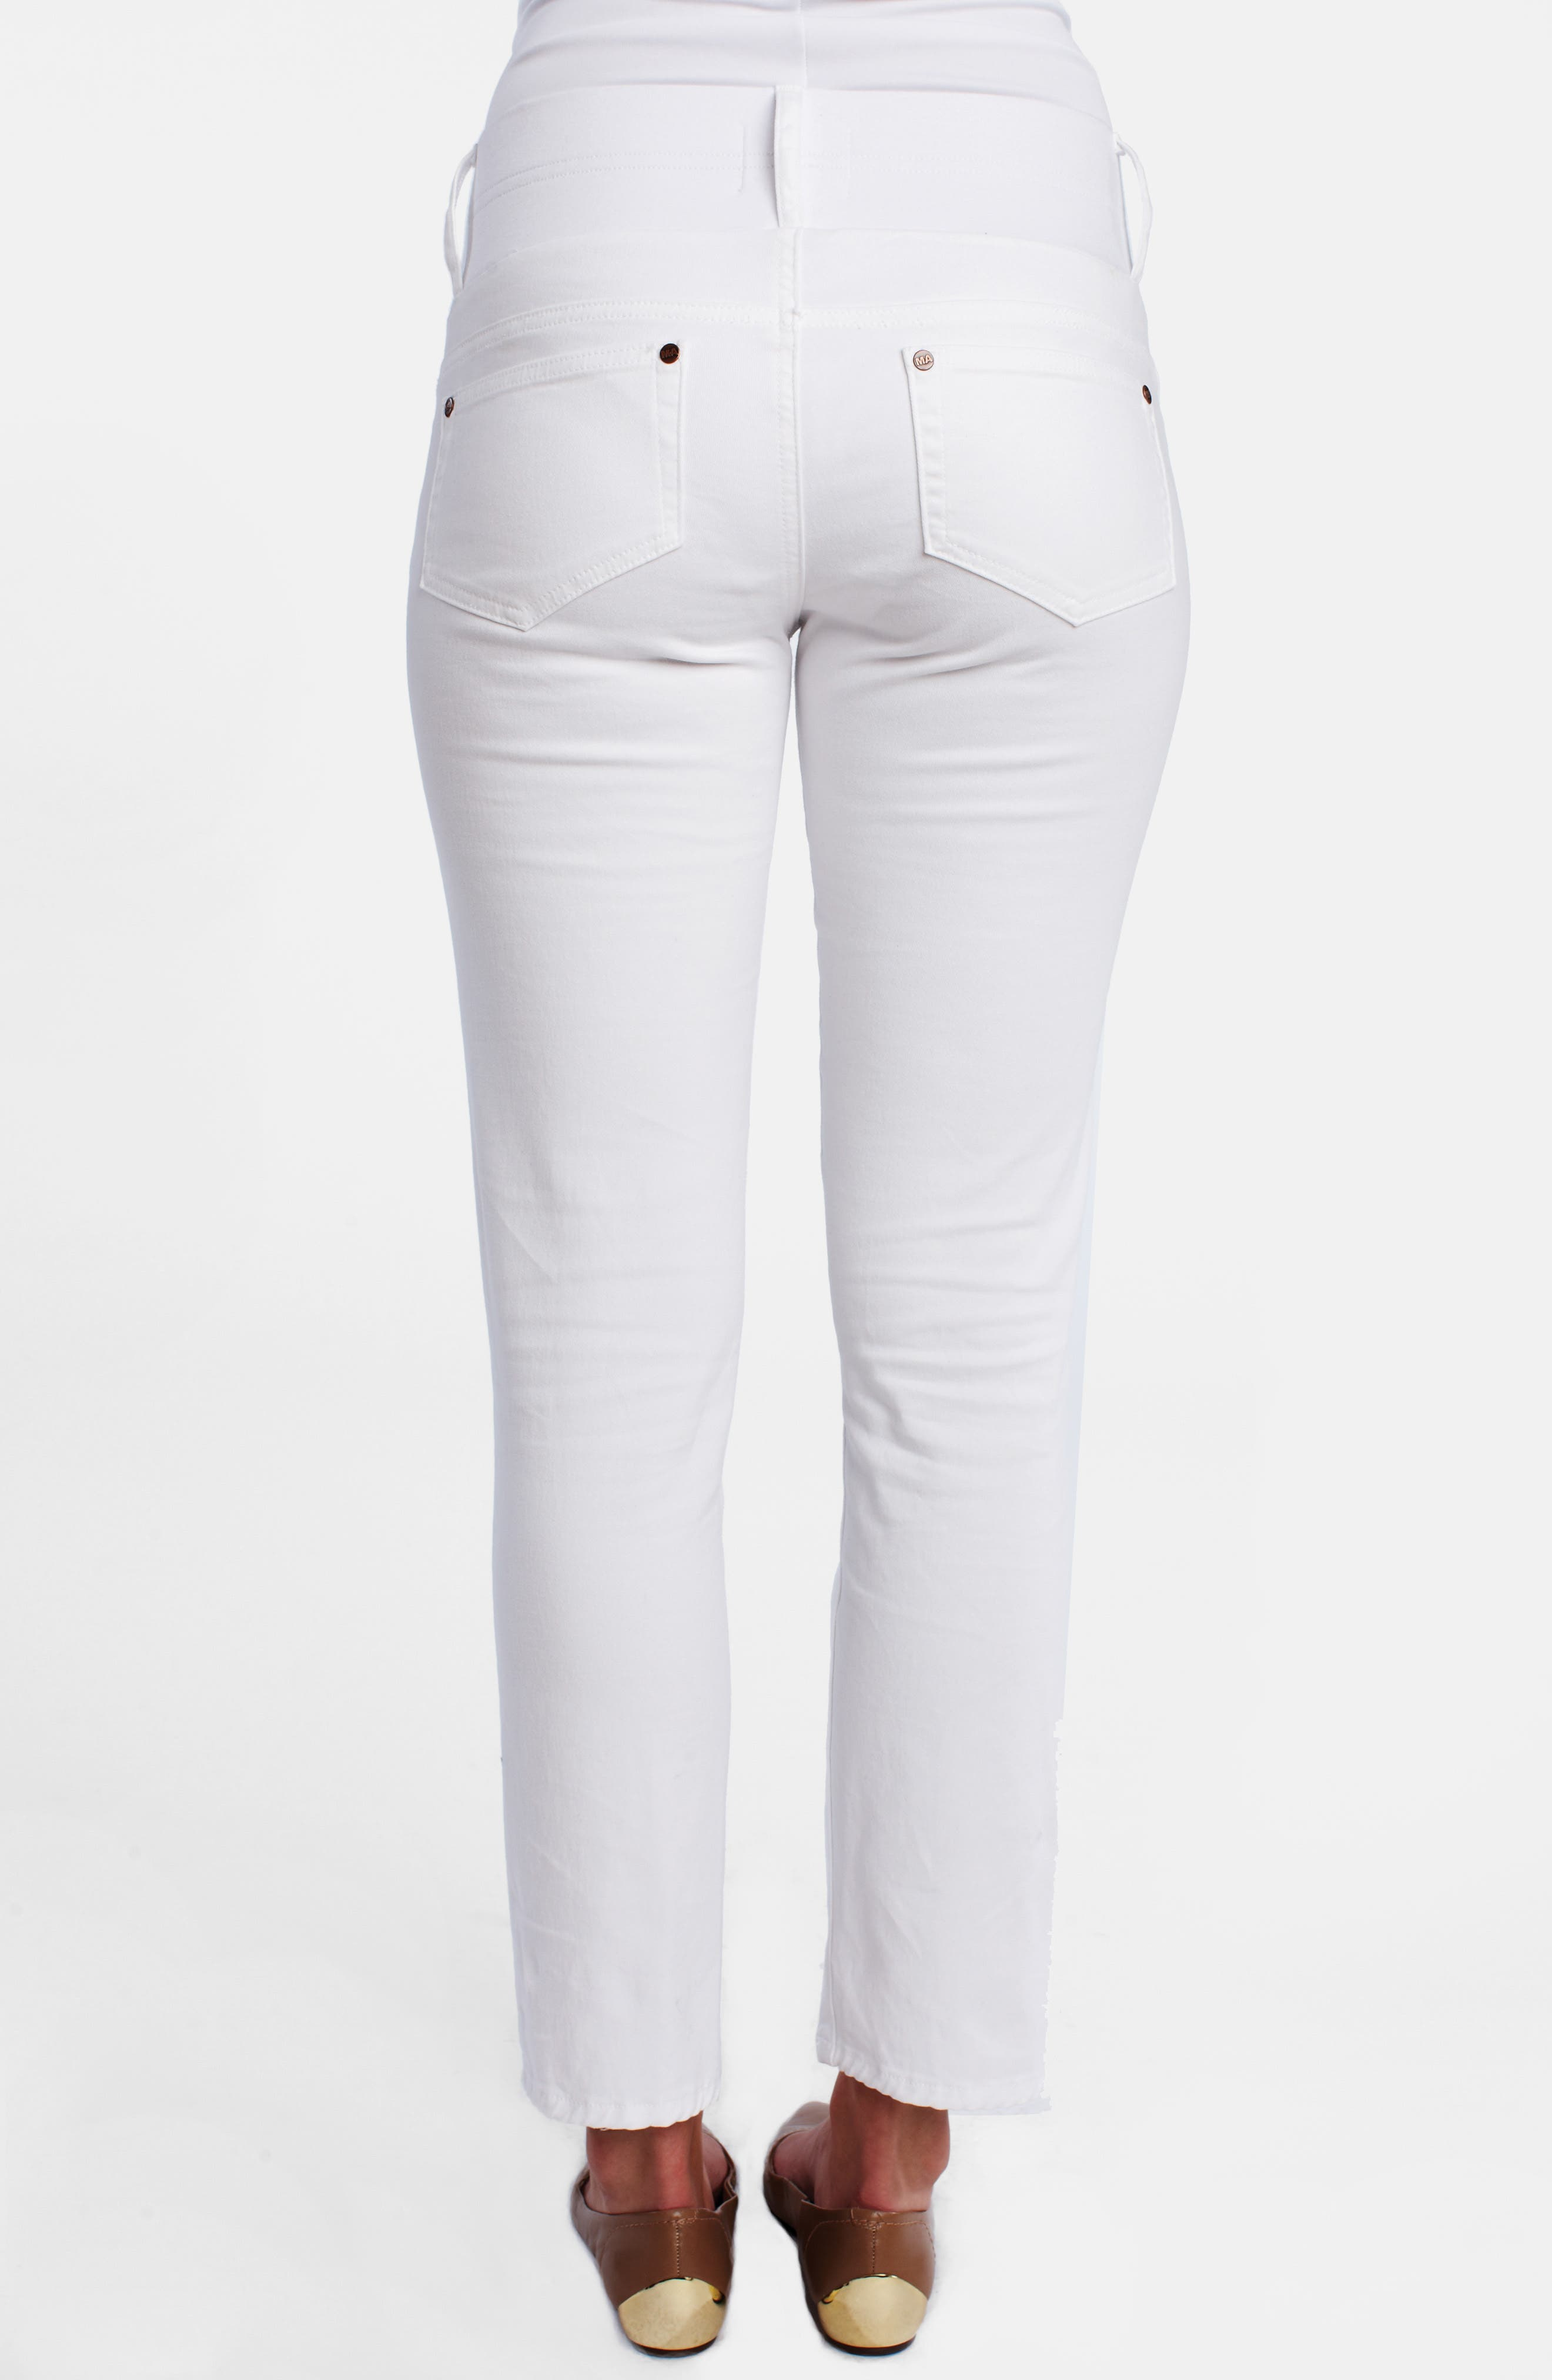 Maternity Skinny Ankle Stretch Jeans,                             Alternate thumbnail 4, color,                             100